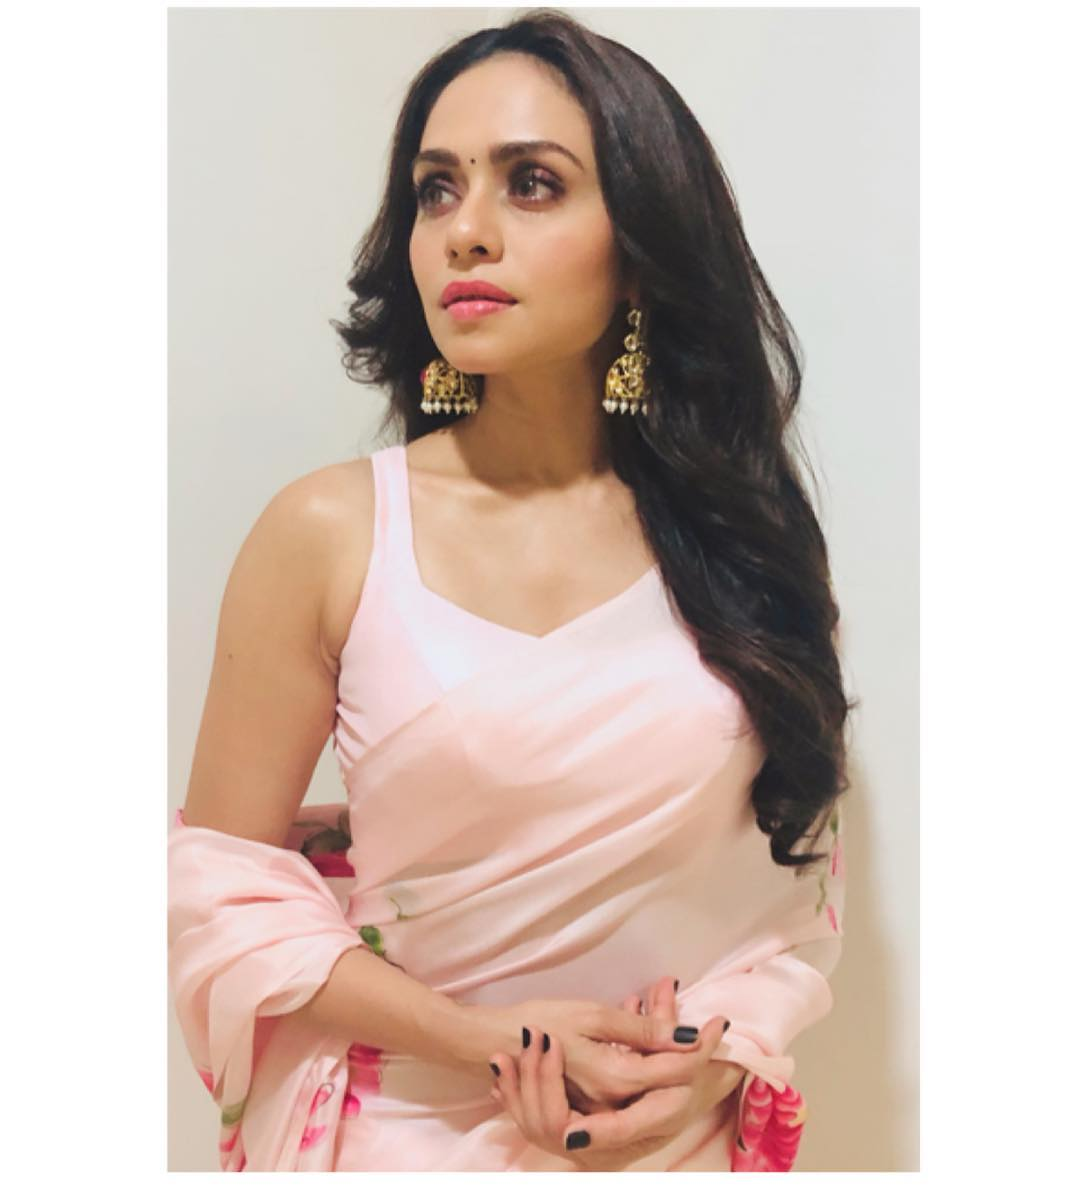 Amruta khanvilkar  IMAGES, GIF, ANIMATED GIF, WALLPAPER, STICKER FOR WHATSAPP & FACEBOOK